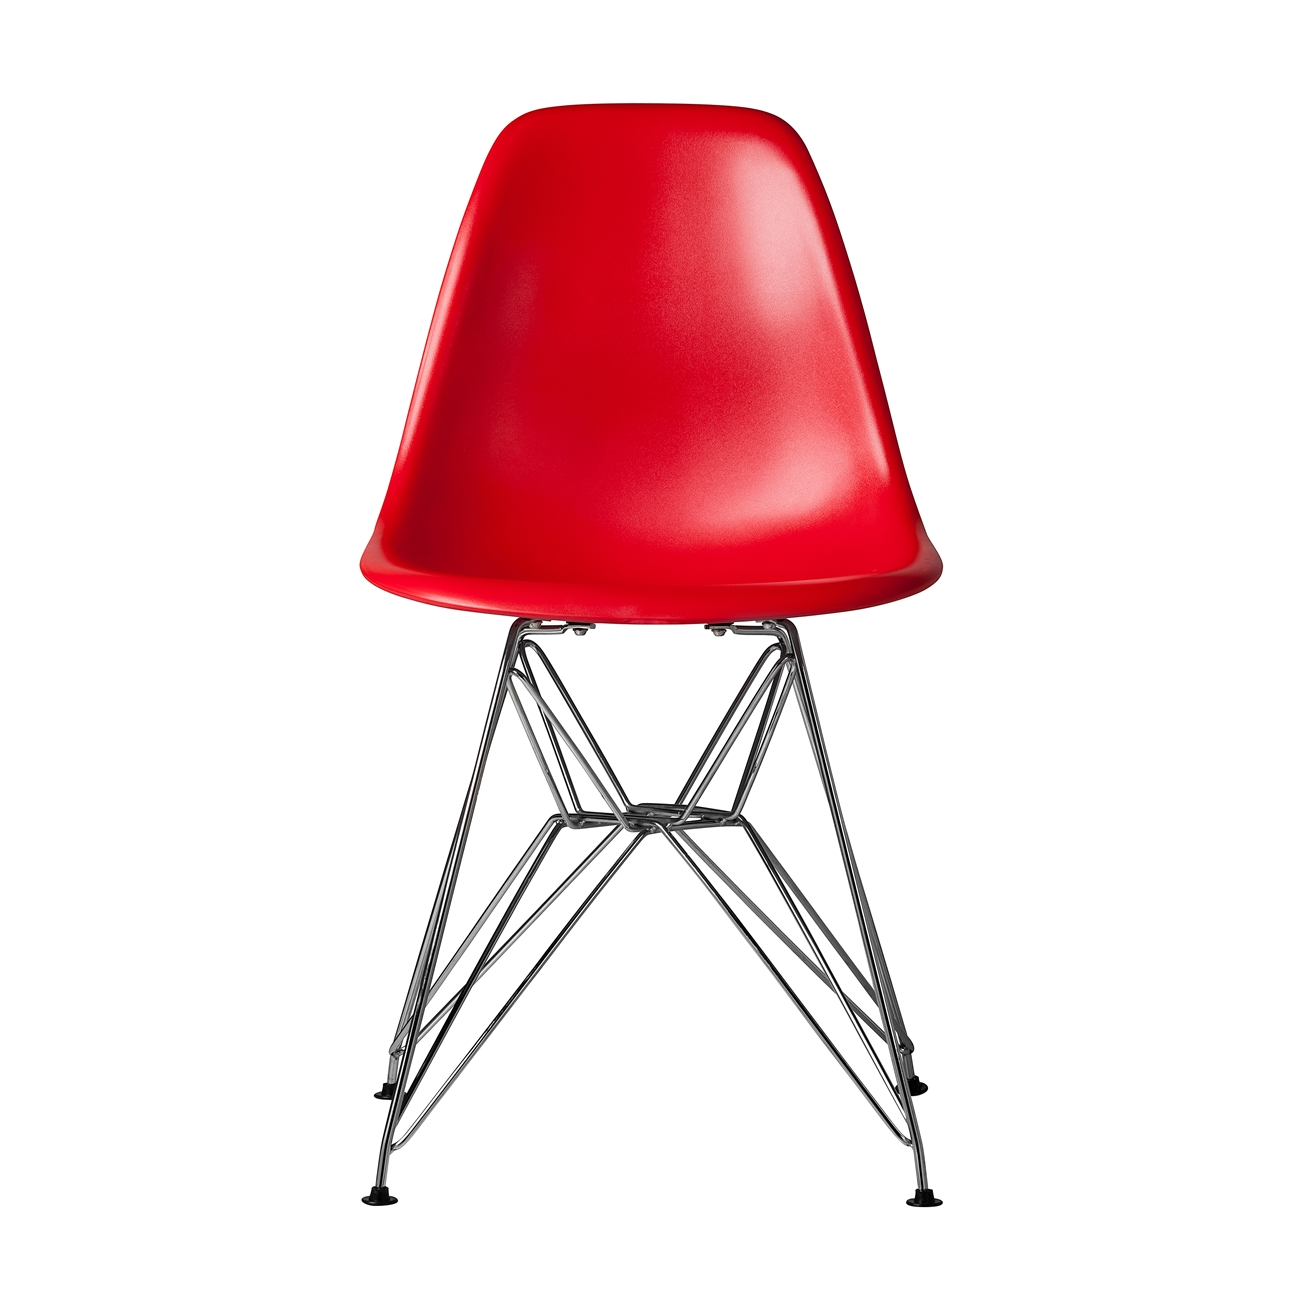 Bon Charles Eames DSR Style Red Side Chair